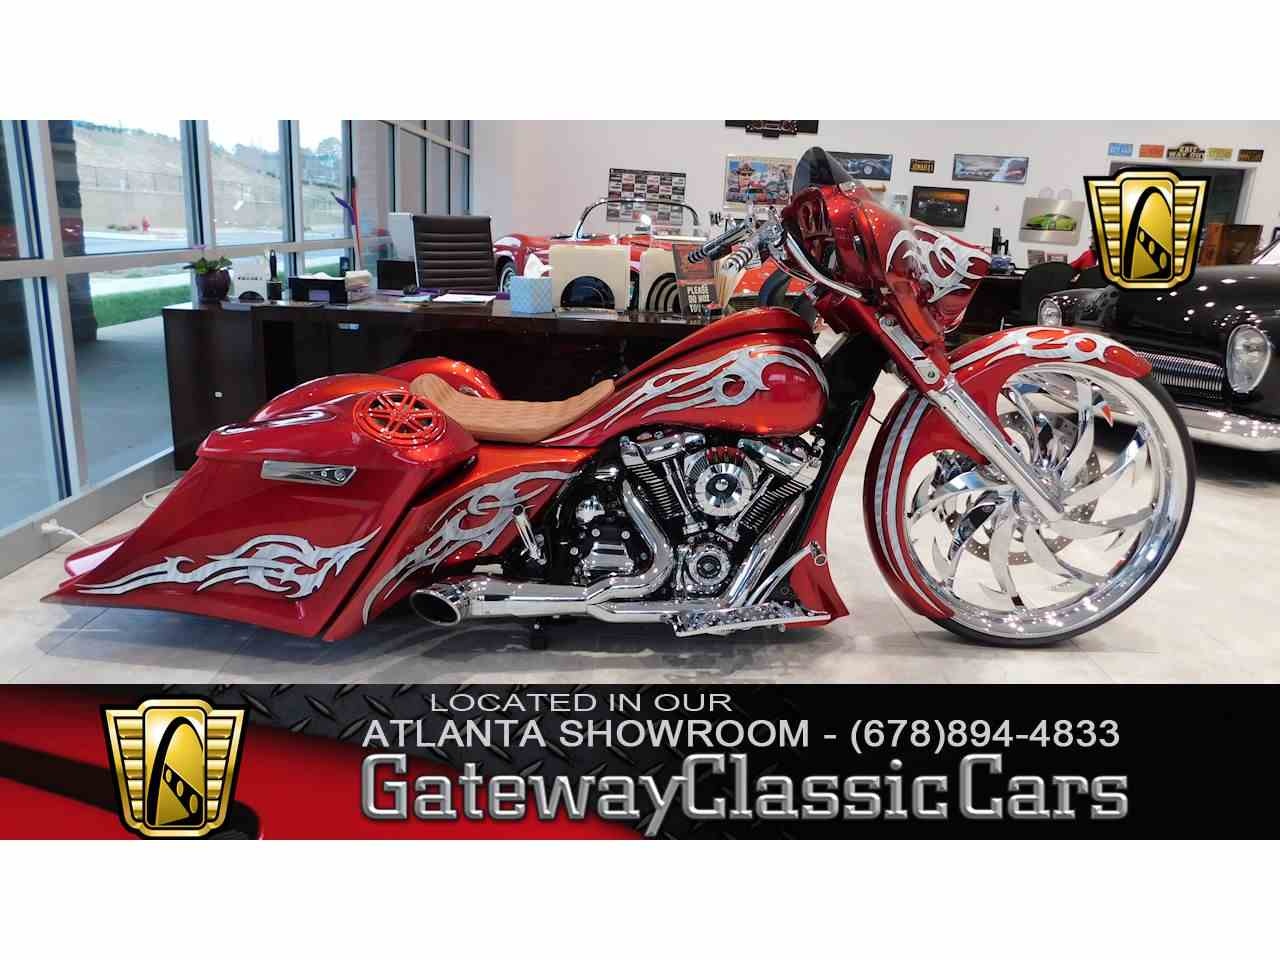 Large Picture of 2017 Harley-Davidson Motorcycle located in Georgia - $98,000.00 - MOAJ